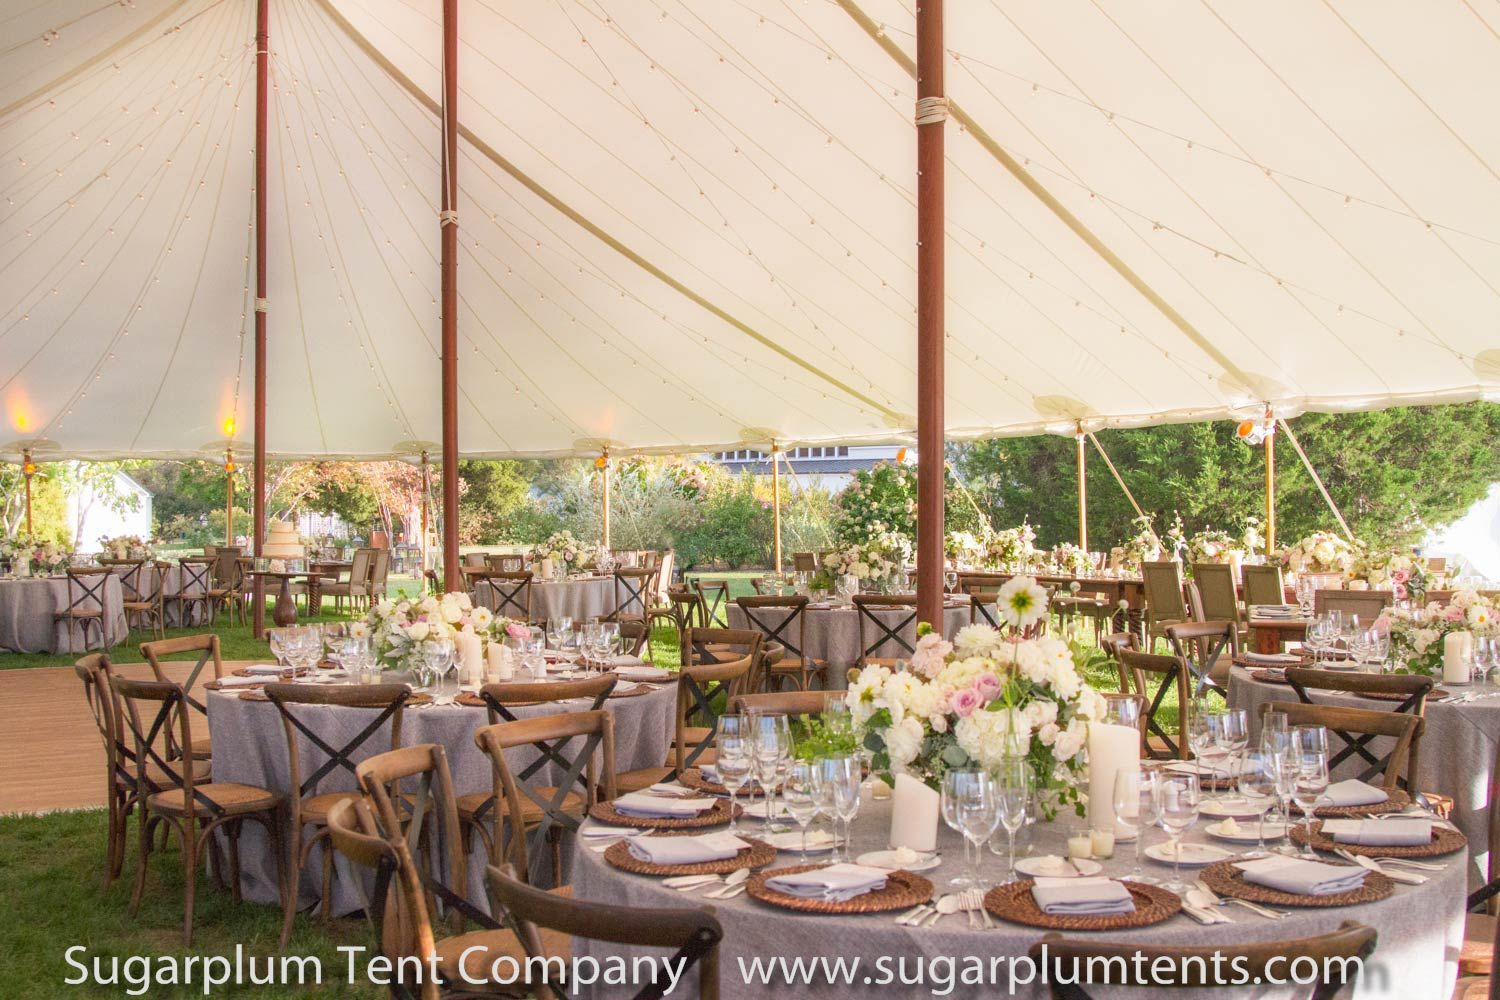 7. Summer weddings Sailcloth Tents = Perfection! Tent